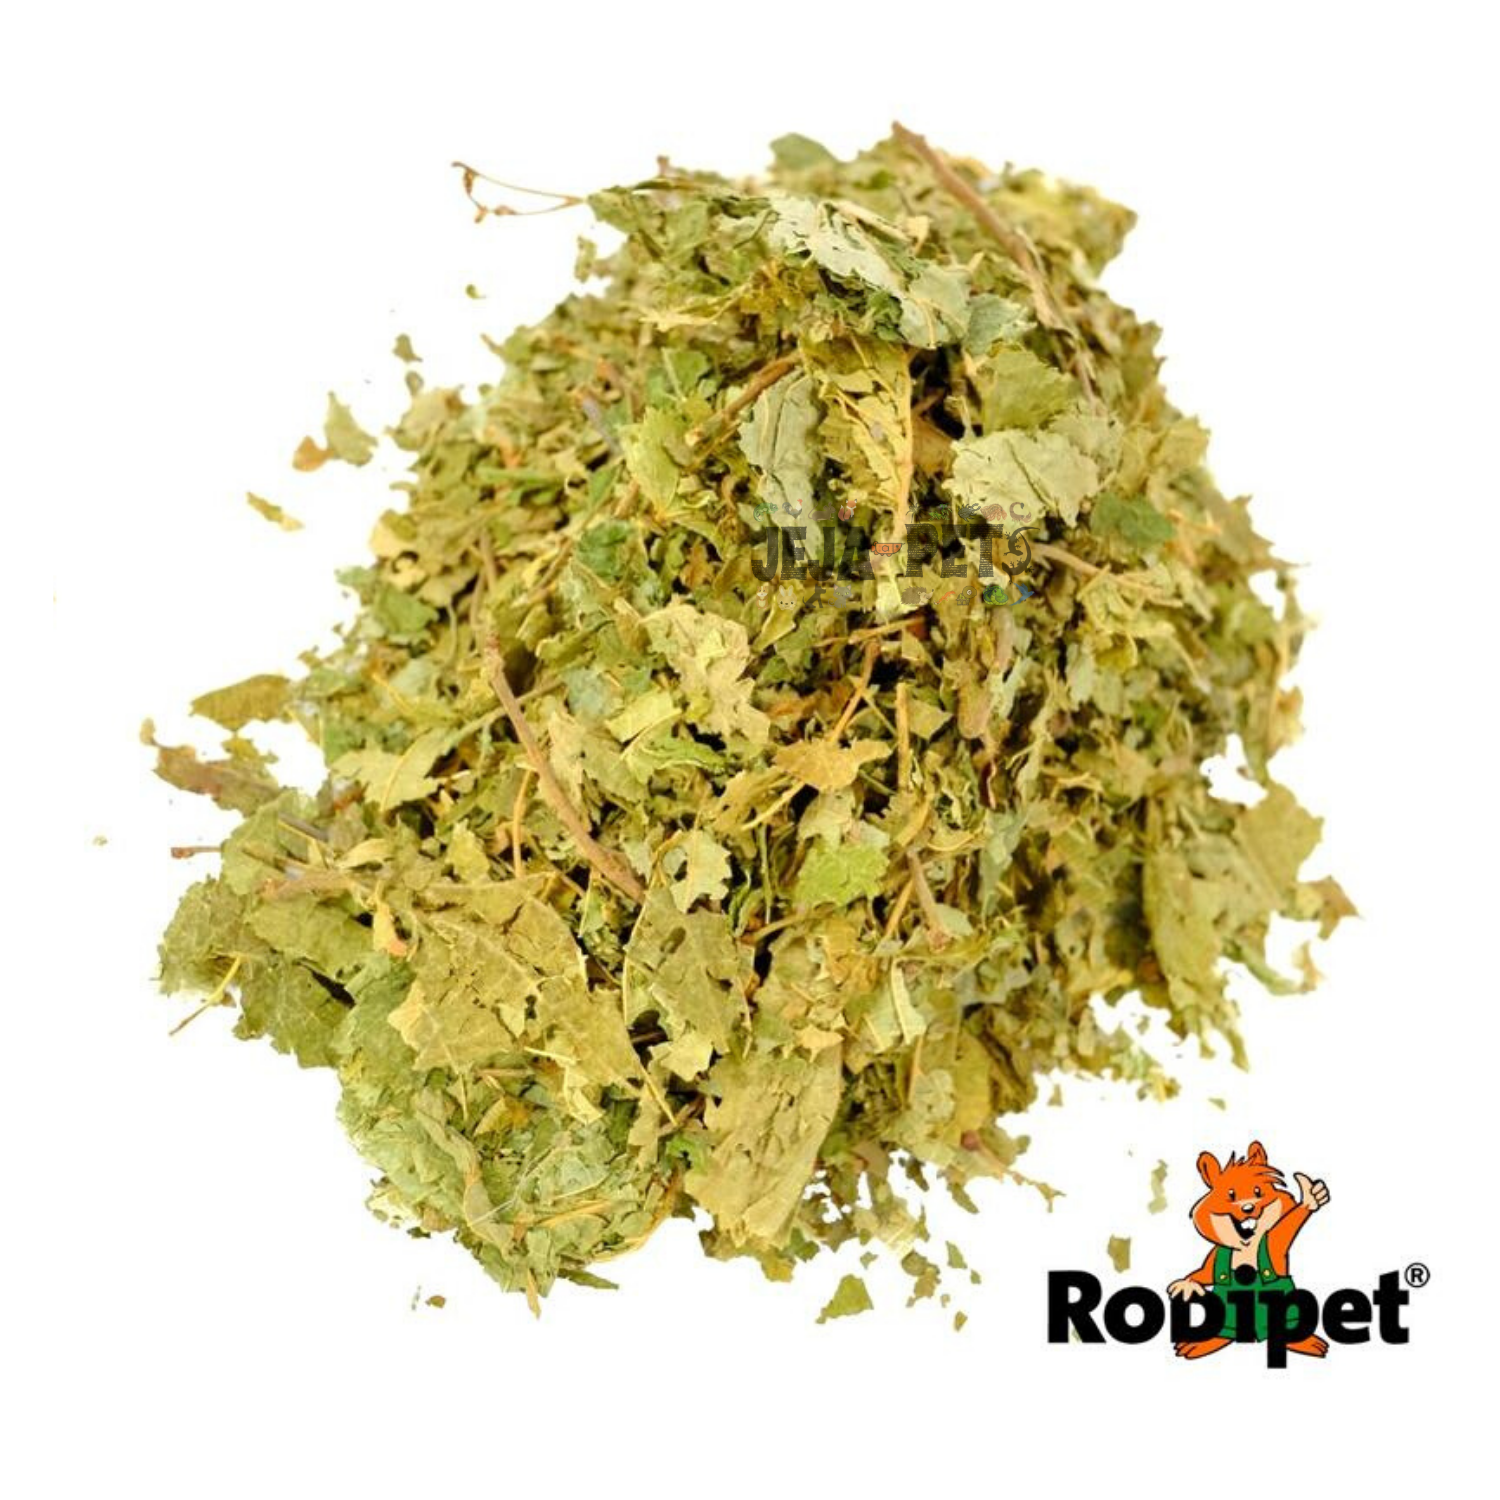 Rodipet Nature's Treasures Hazel Leaves - 80g